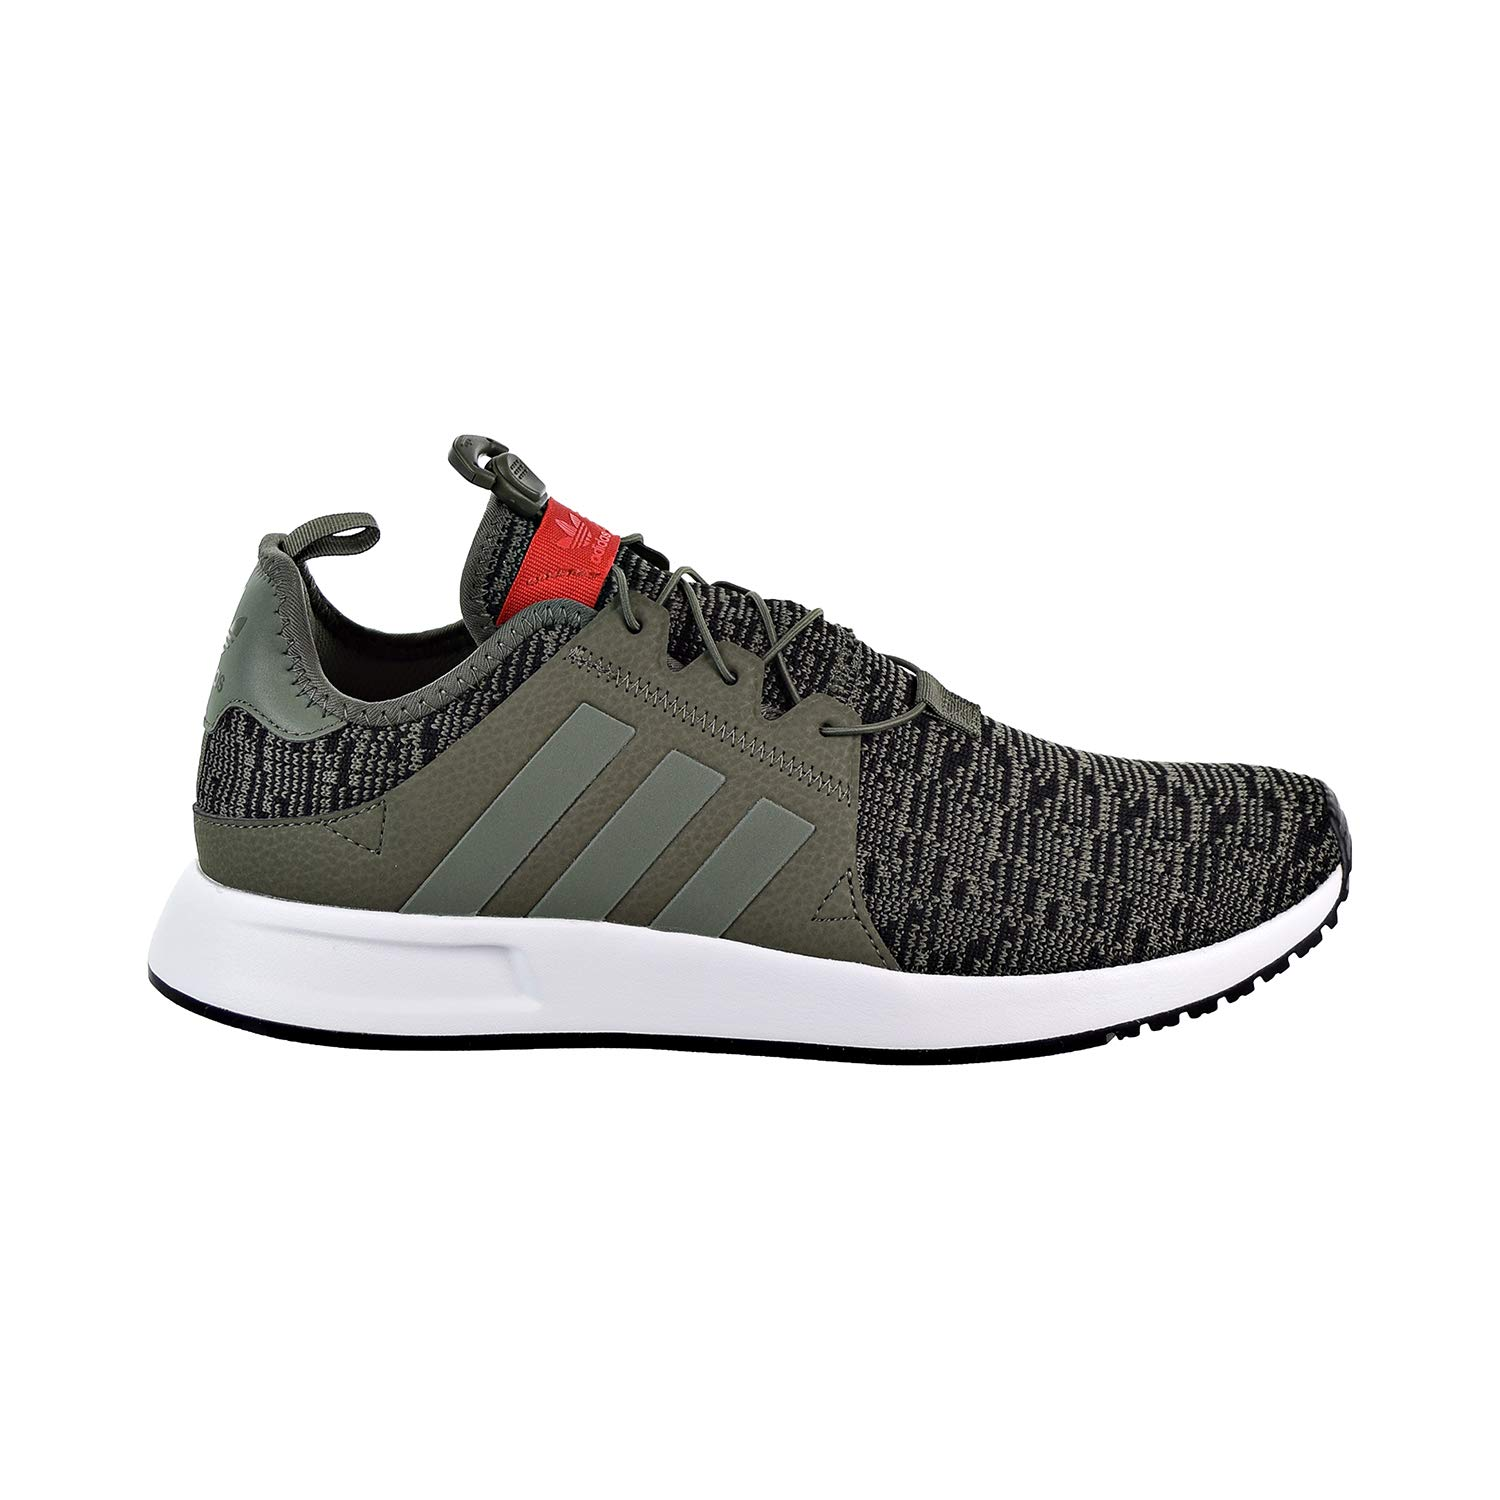 8c37009e0530 adidas Men s Xplorer Casual Sneakers From Finish Line  Amazon.co.uk  Shoes    Bags